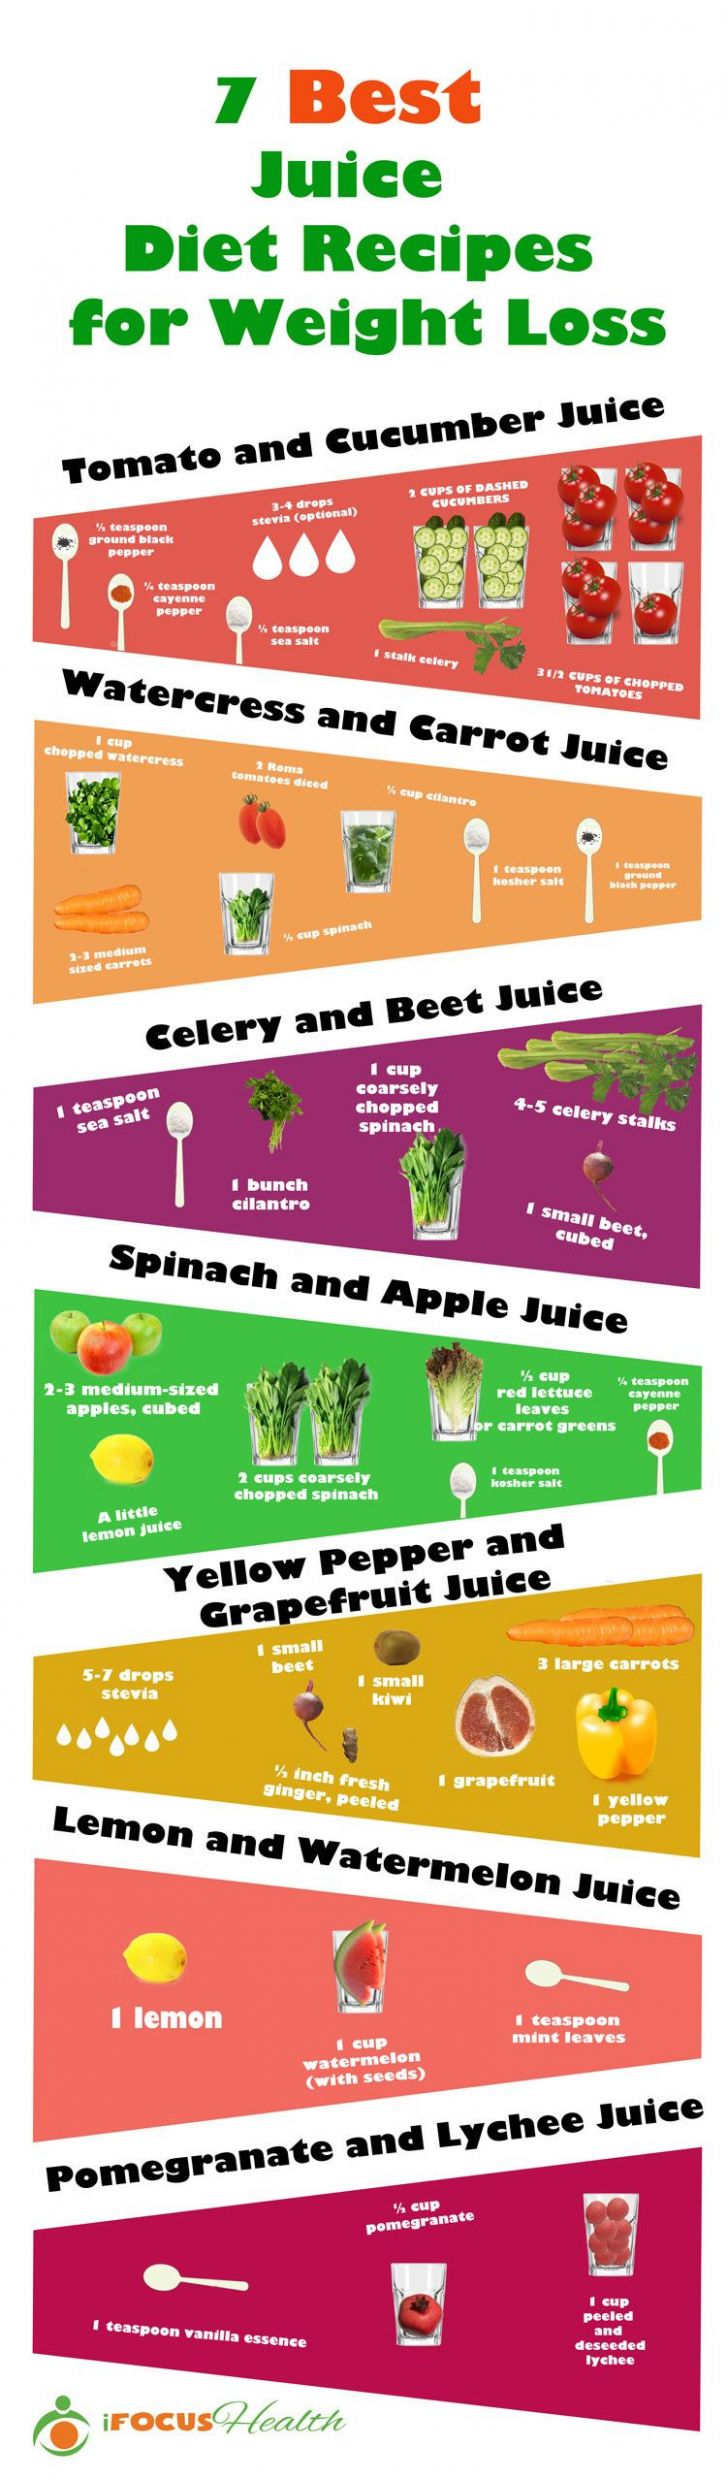 9 Simple Juicing Recipes for Weight Loss (Infographic)